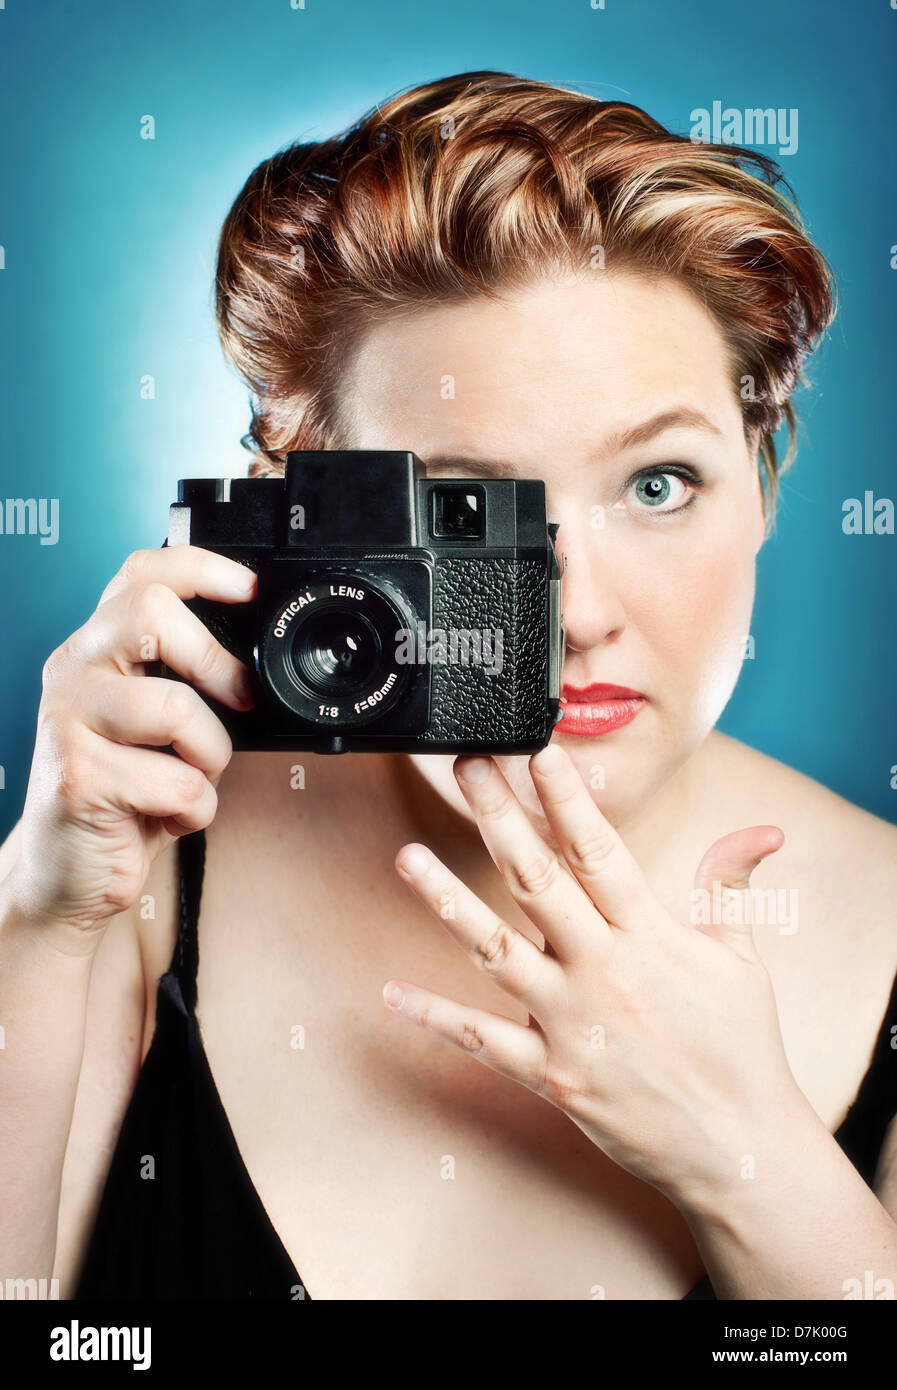 Portrait of young woman taking a picture with a toy camera in studio against blue backdrop - Stock Image